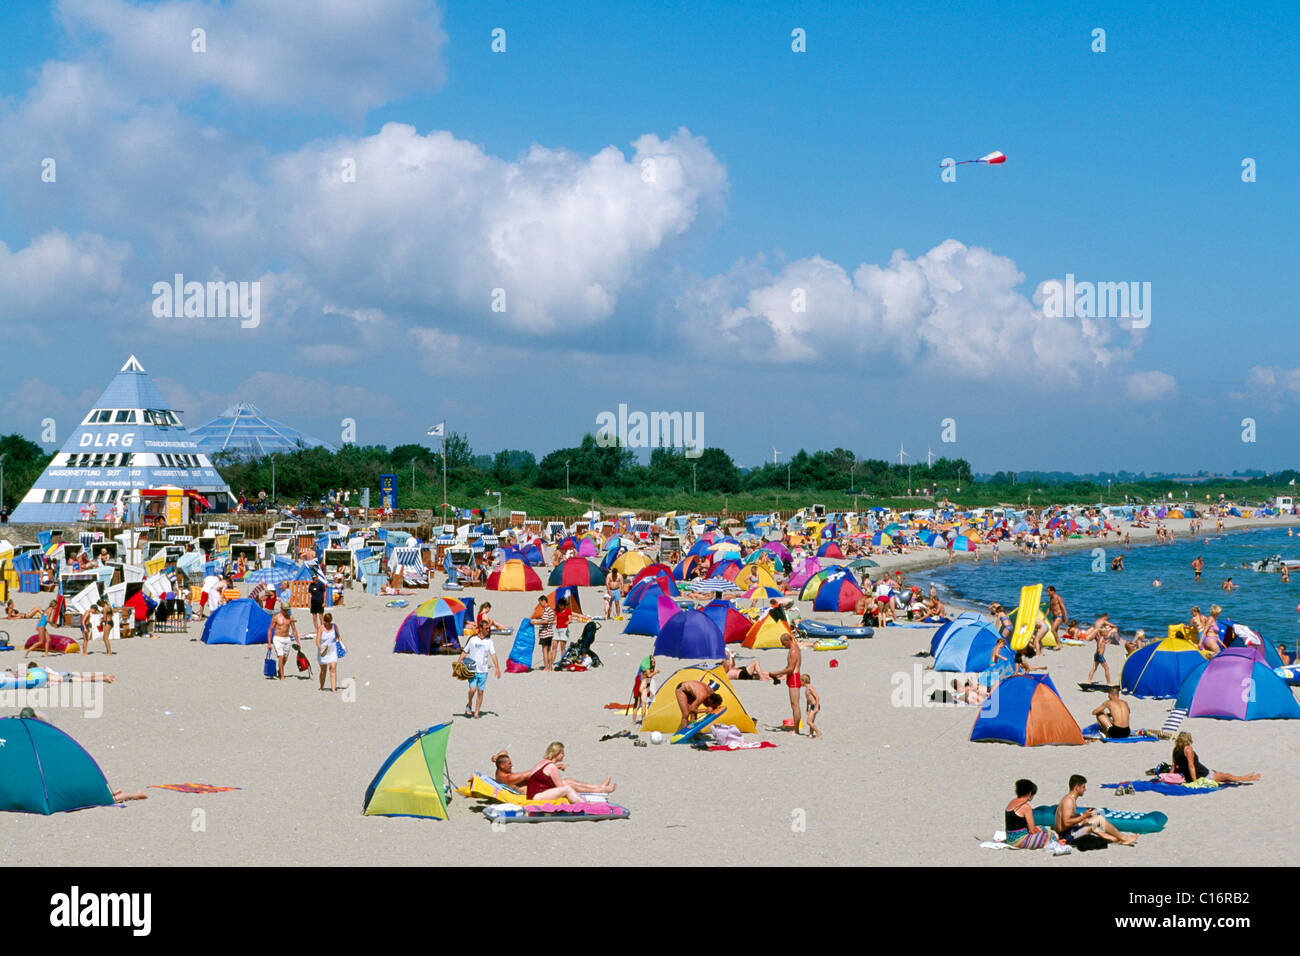 Baltic Sea resort Damp, Schleswig-Holstein, Germany, Europe - Stock Image